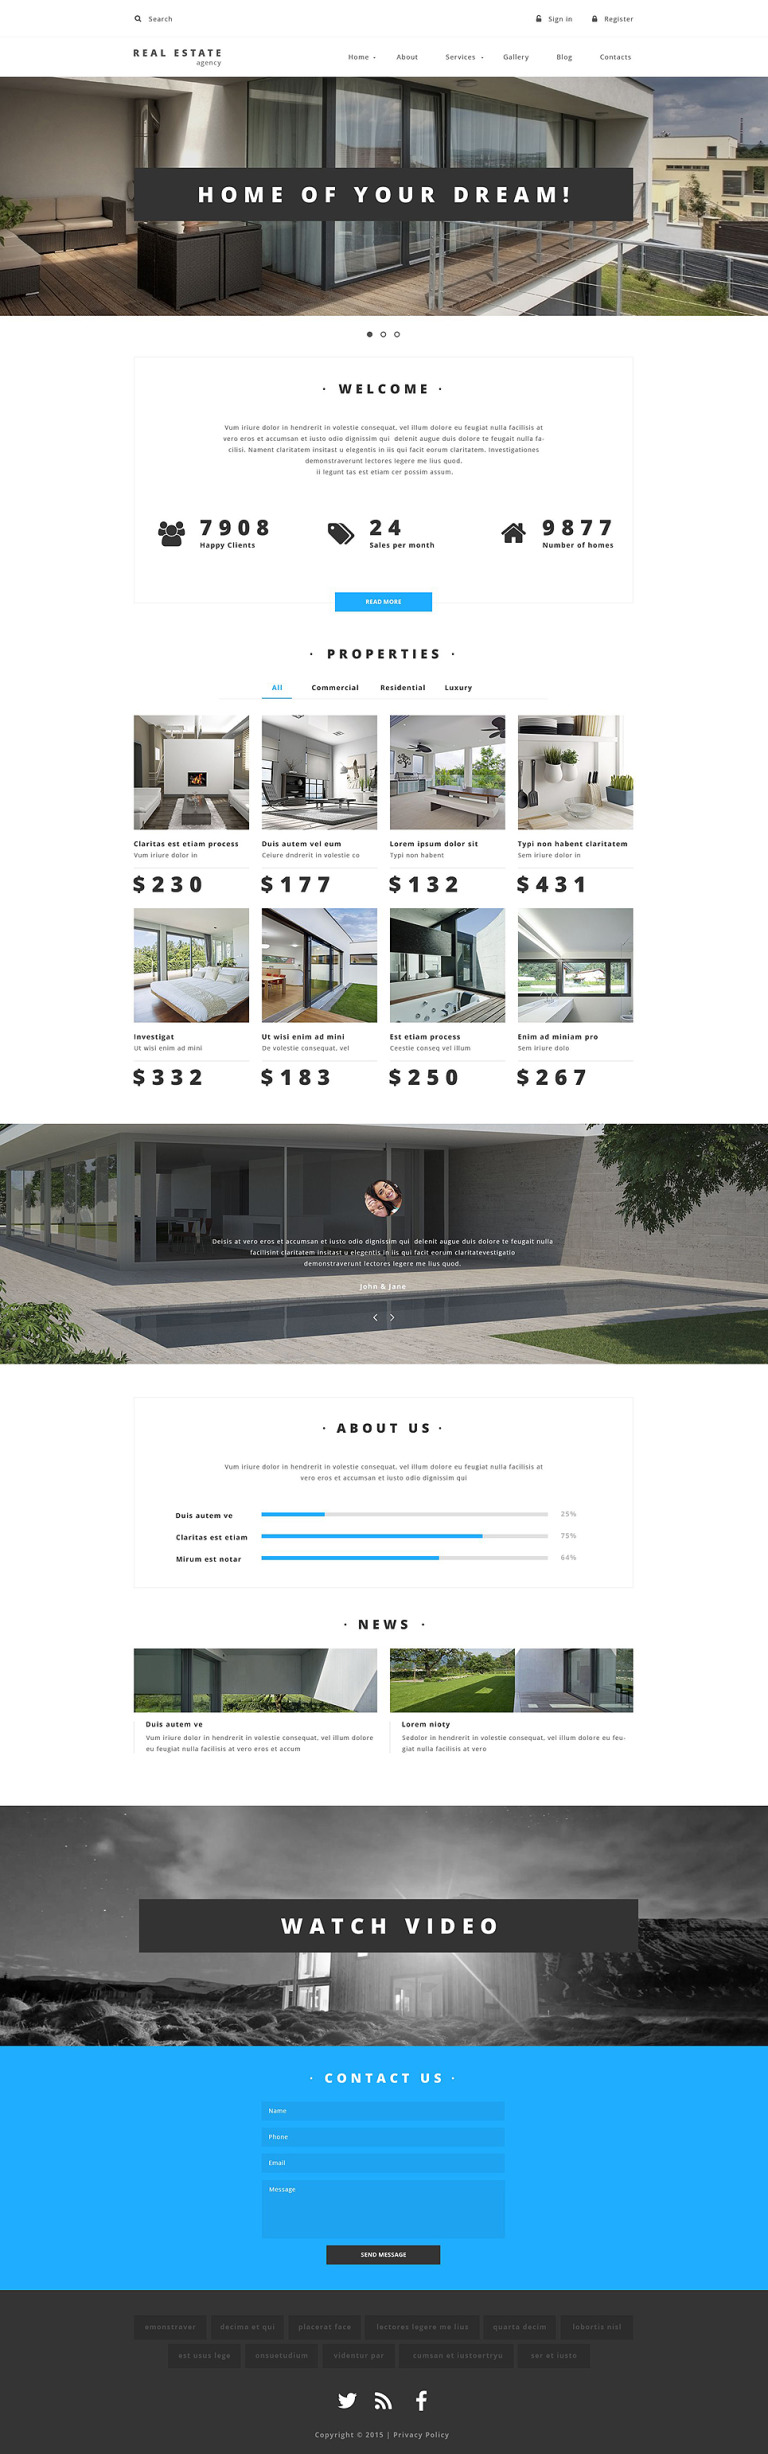 Property Provider Drupal Template New Screenshots BIG